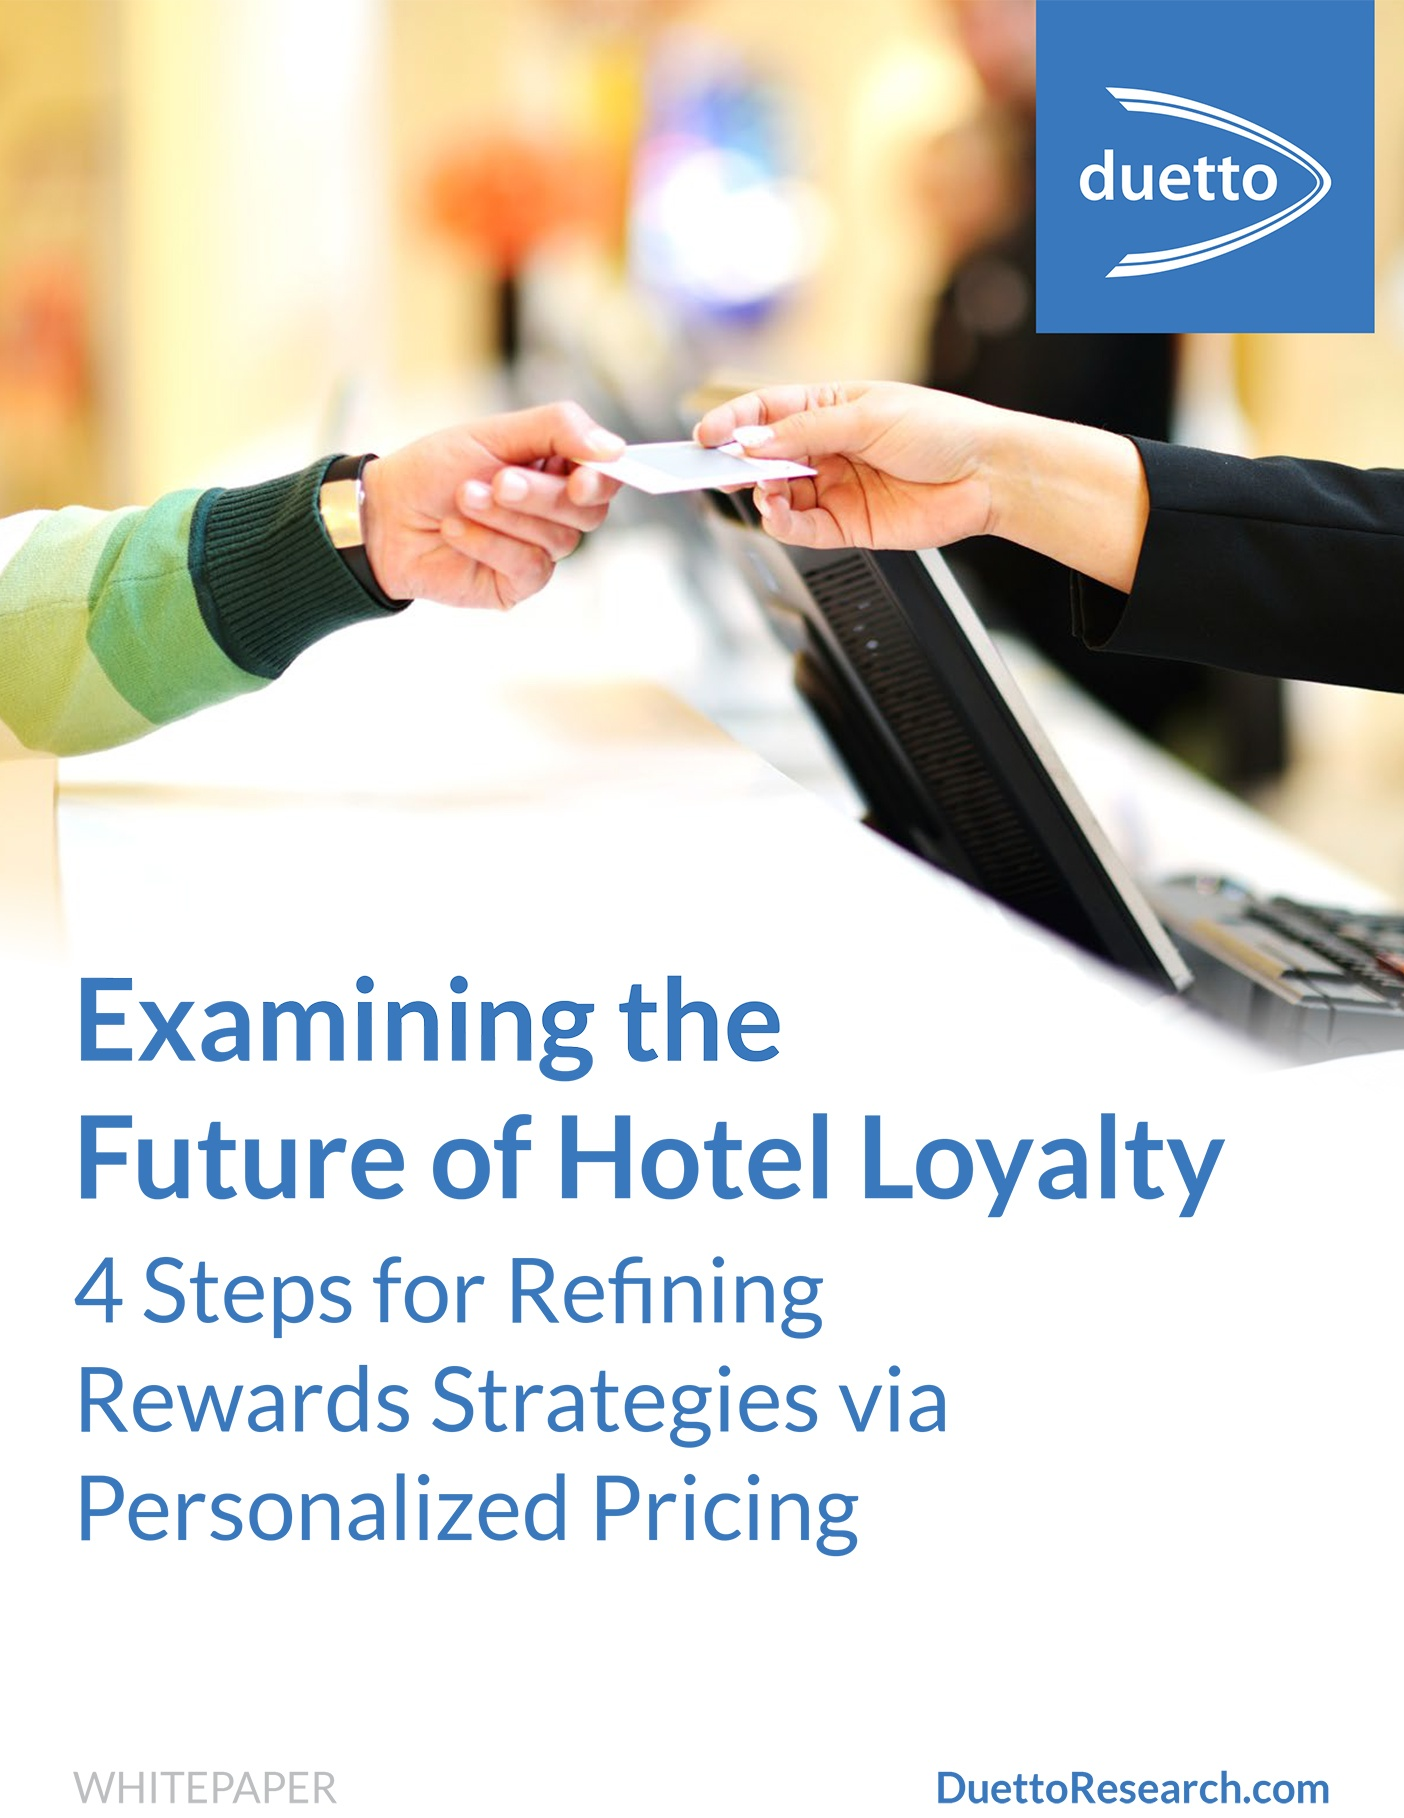 1_Examining the Future of Hotel Loyalty.jpg